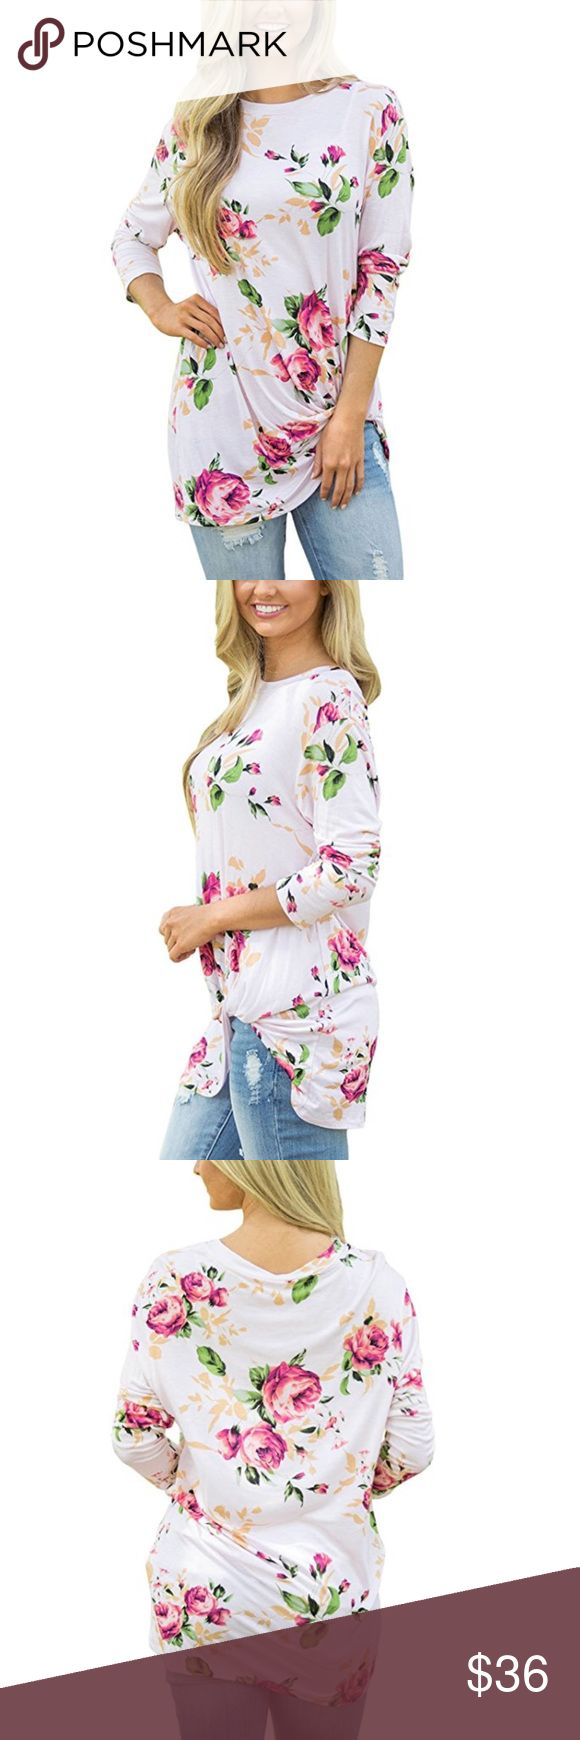 Pink and White Floral Cotton Long Sleeve T Shirt This airy, feminine top has a romantic feel and looks great no matter what you pair it with.  Terrific on its own or as a layering piece for fall and winter.  Range of sizes available! Lalea Tops Tees - Long Sleeve